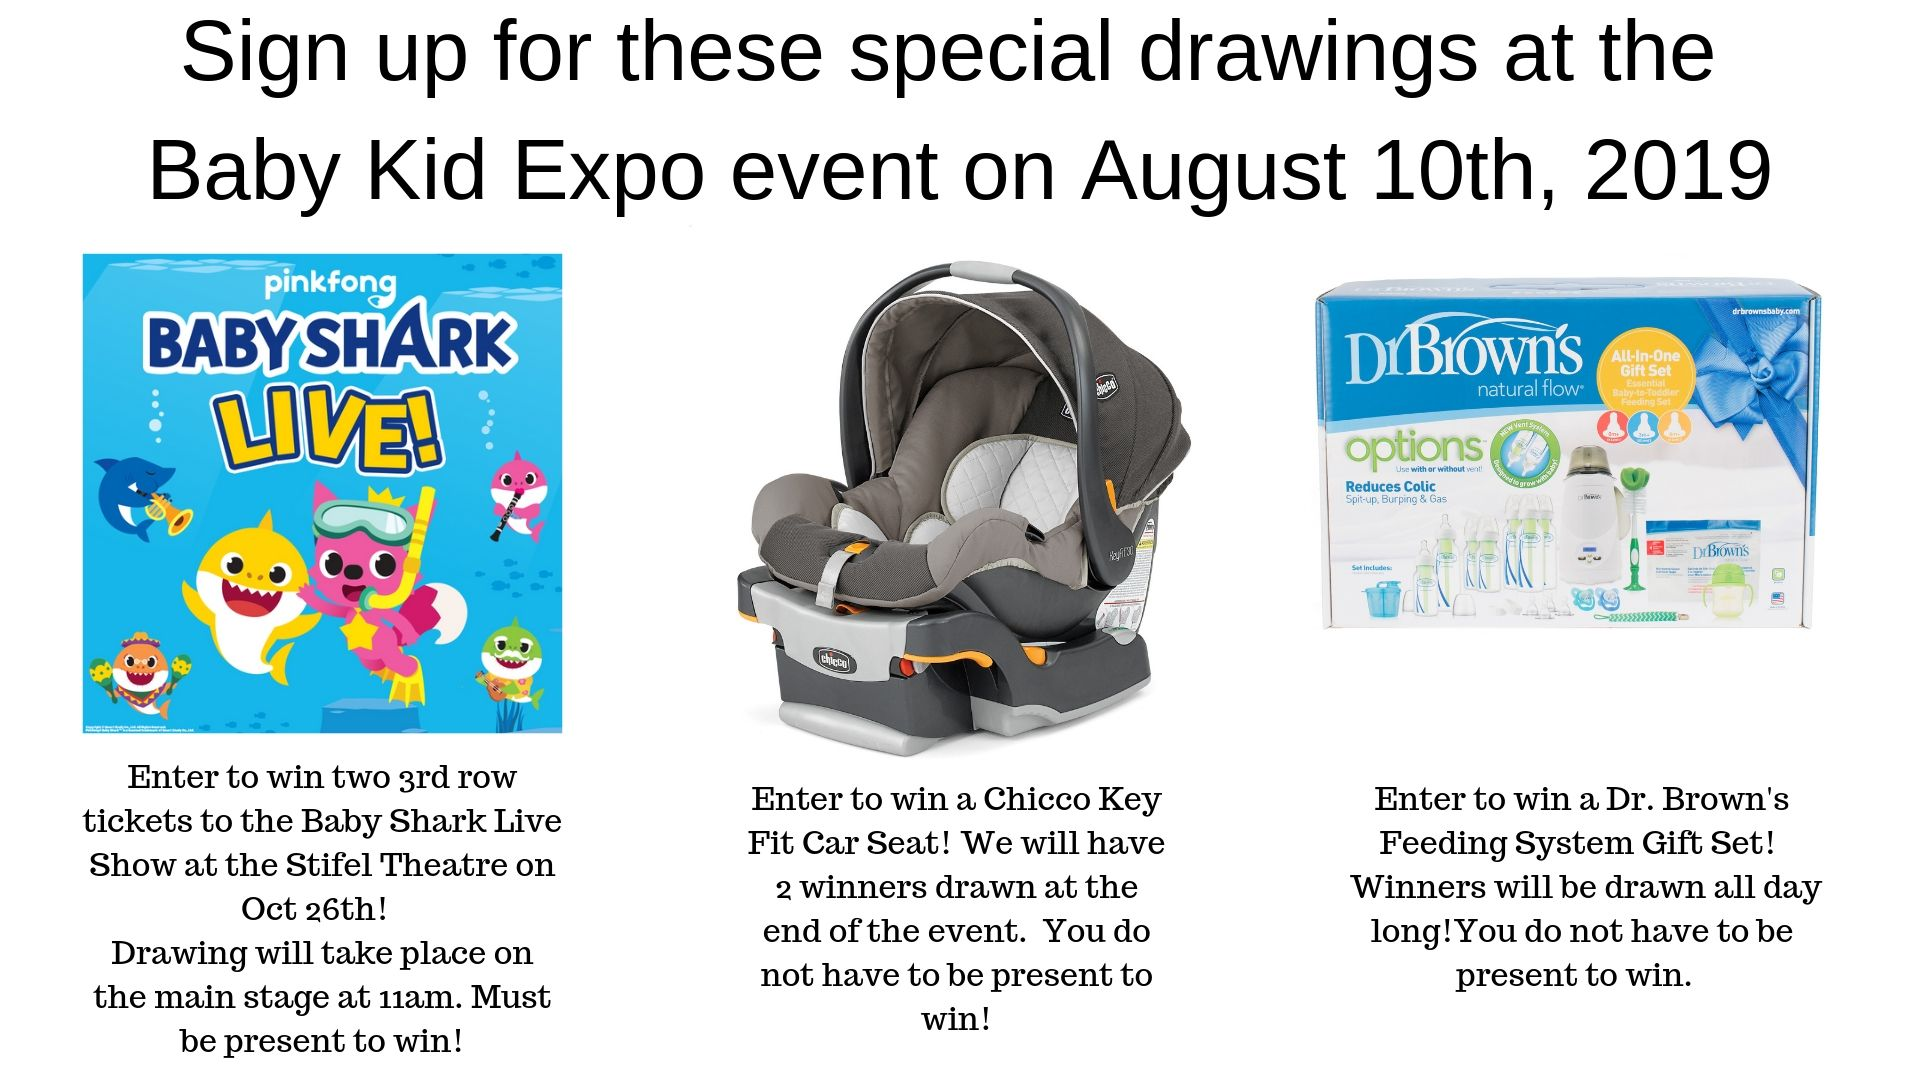 Sign up for these special giveaways at the Baby Kid Expo on August 10th, 2019 (1)